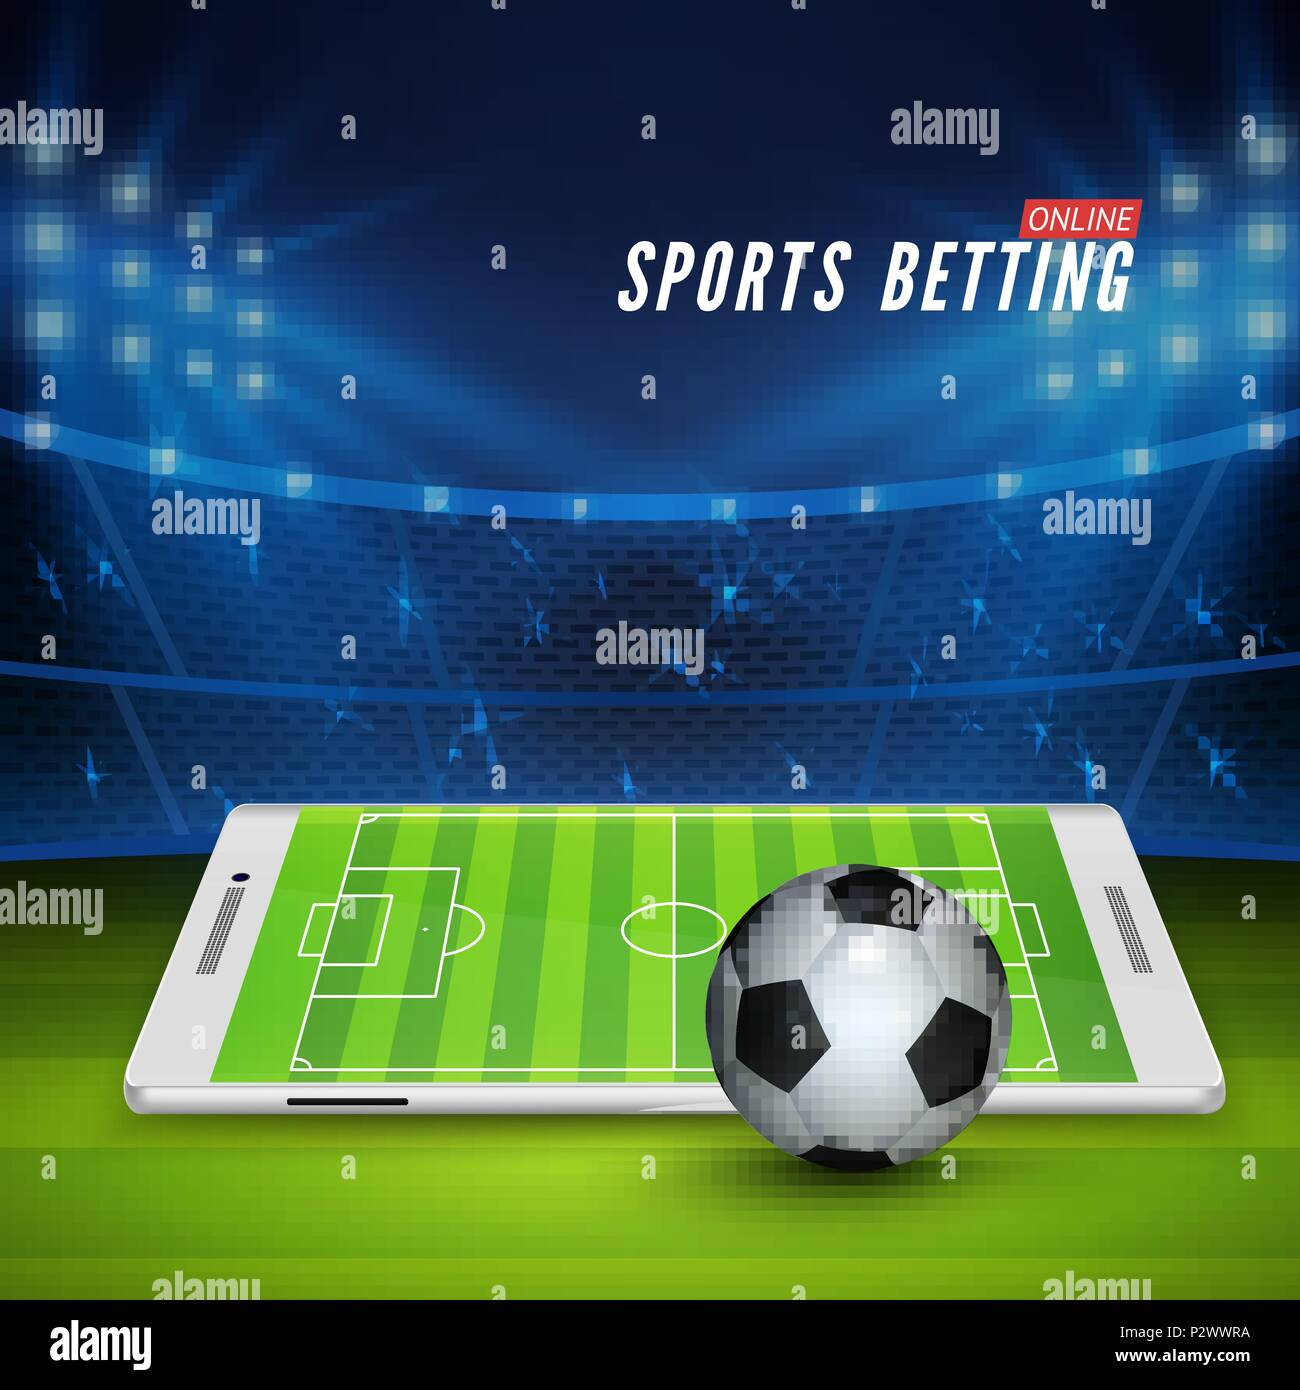 Soccer bet online. Sports betting concept. Soccer stadium and white mobile phone with ball on foreground. Vector illustration - Stock Vector